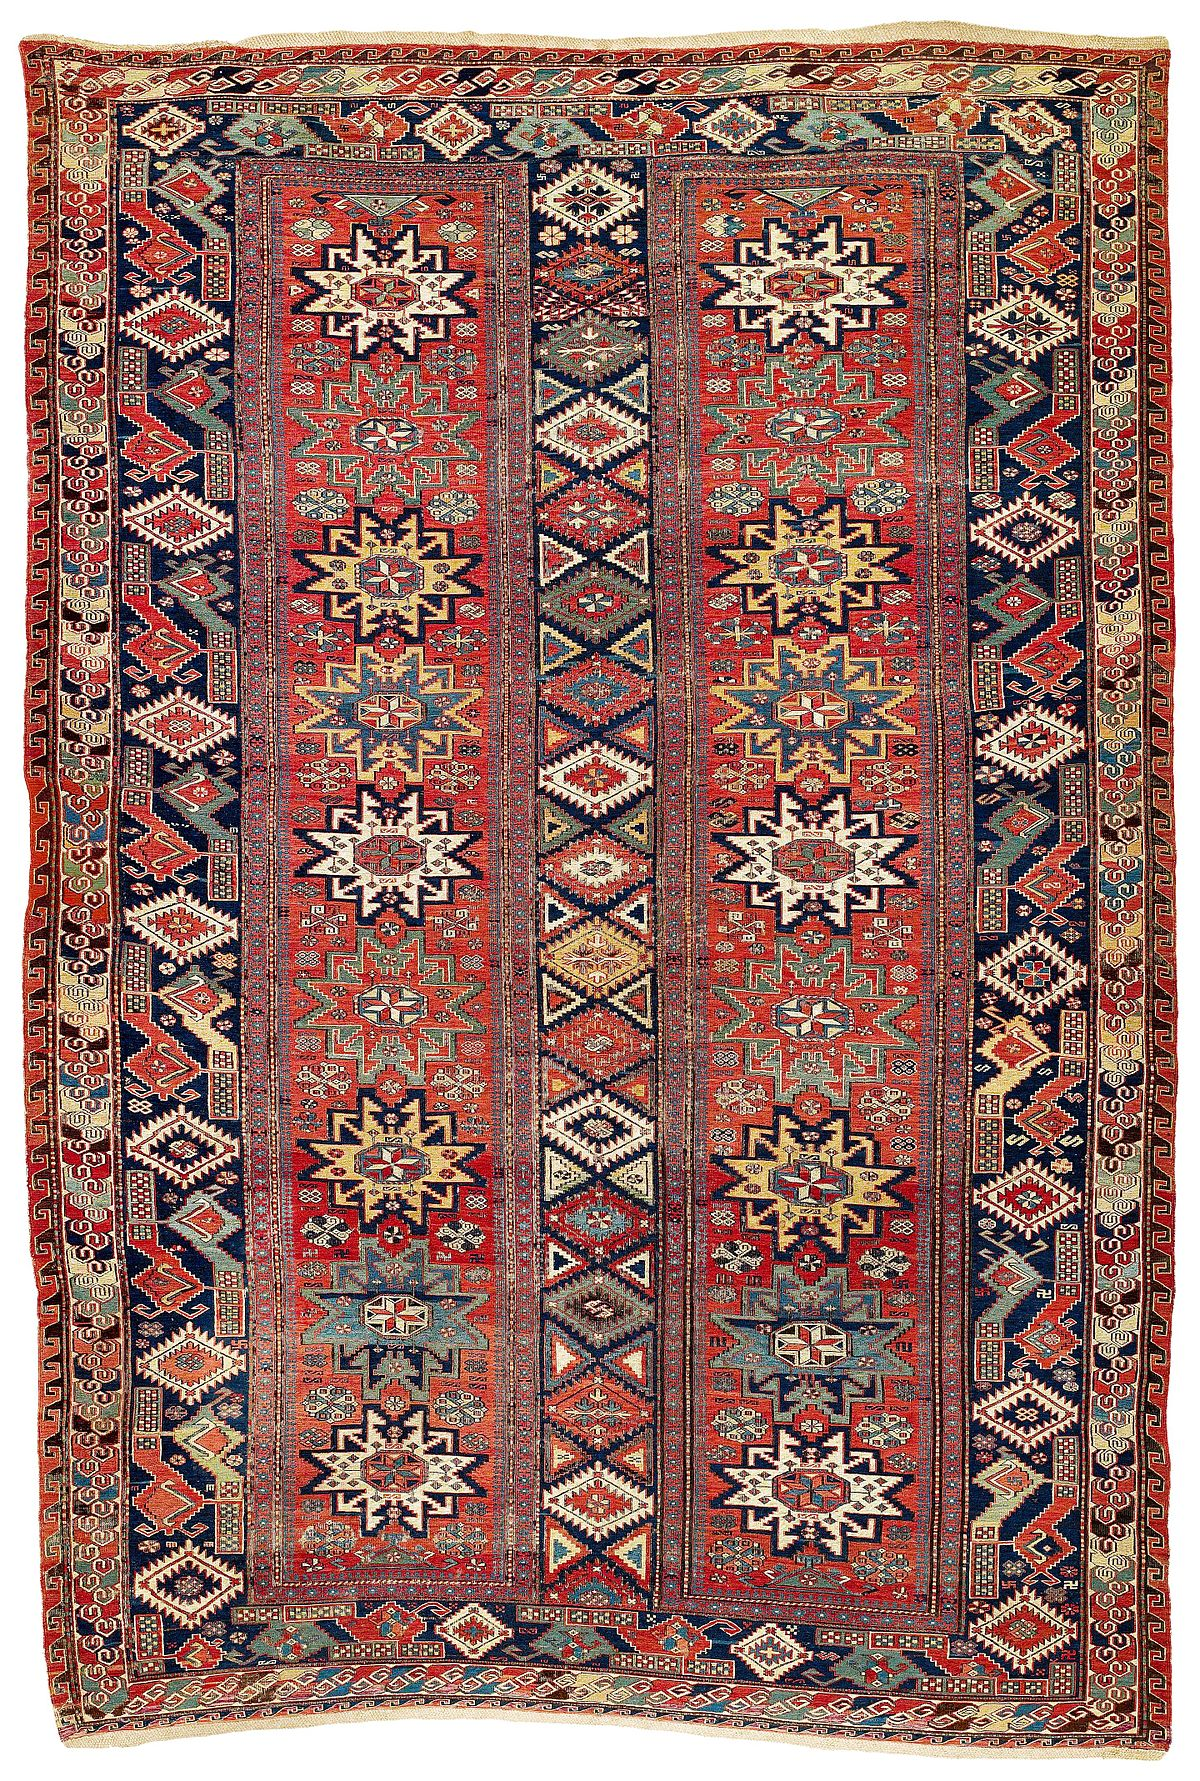 Rugs And Carpets Caucasian Carpets And Rugs Wikipedia